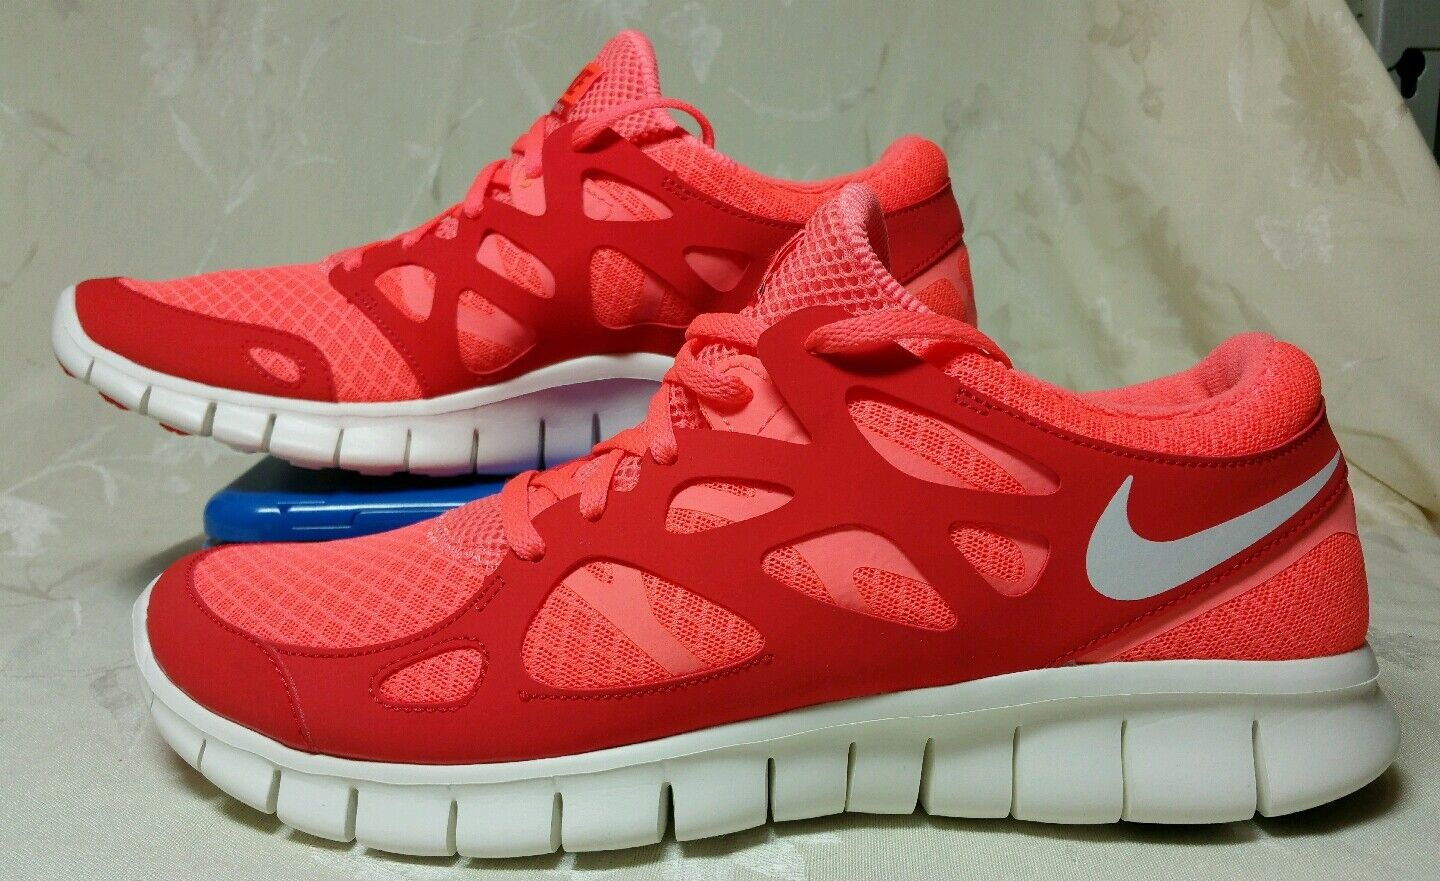 NIKE WOMEN FREE RUN + 2 BRIGHT MANGO/SAIL ACTION RED 443816 806 NIB SZ 11.5 & 12